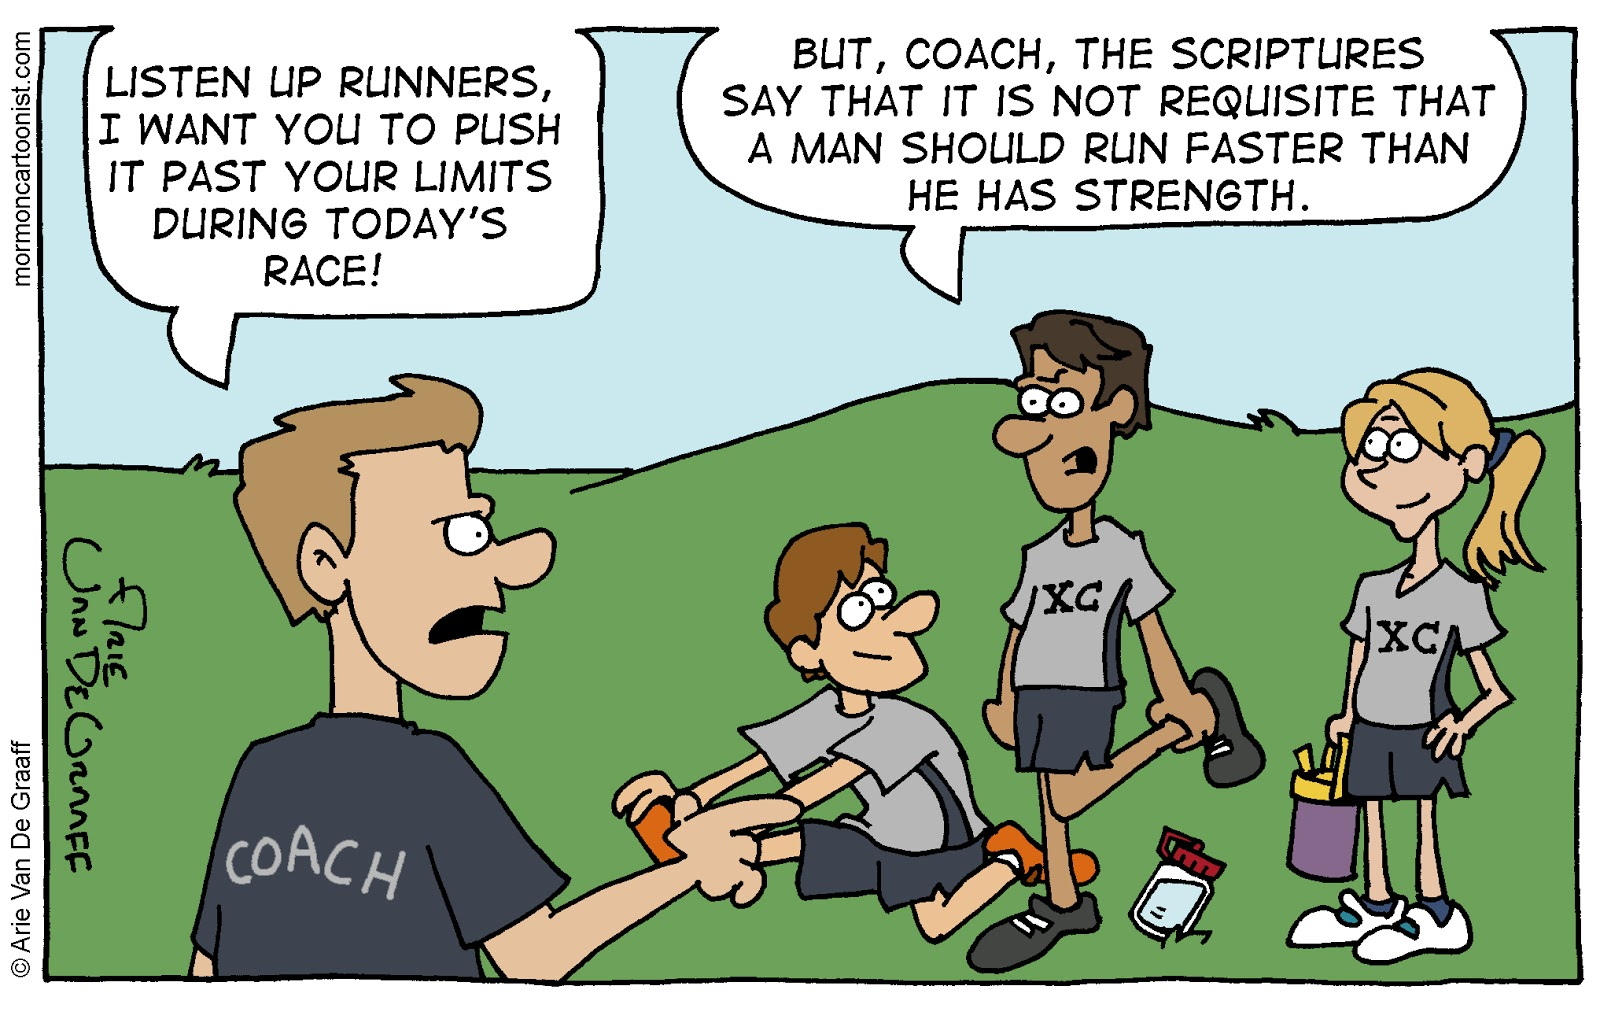 Something Tells Me That Cross Country Coaches Dont Like This Particular Counsel From King Benjamin